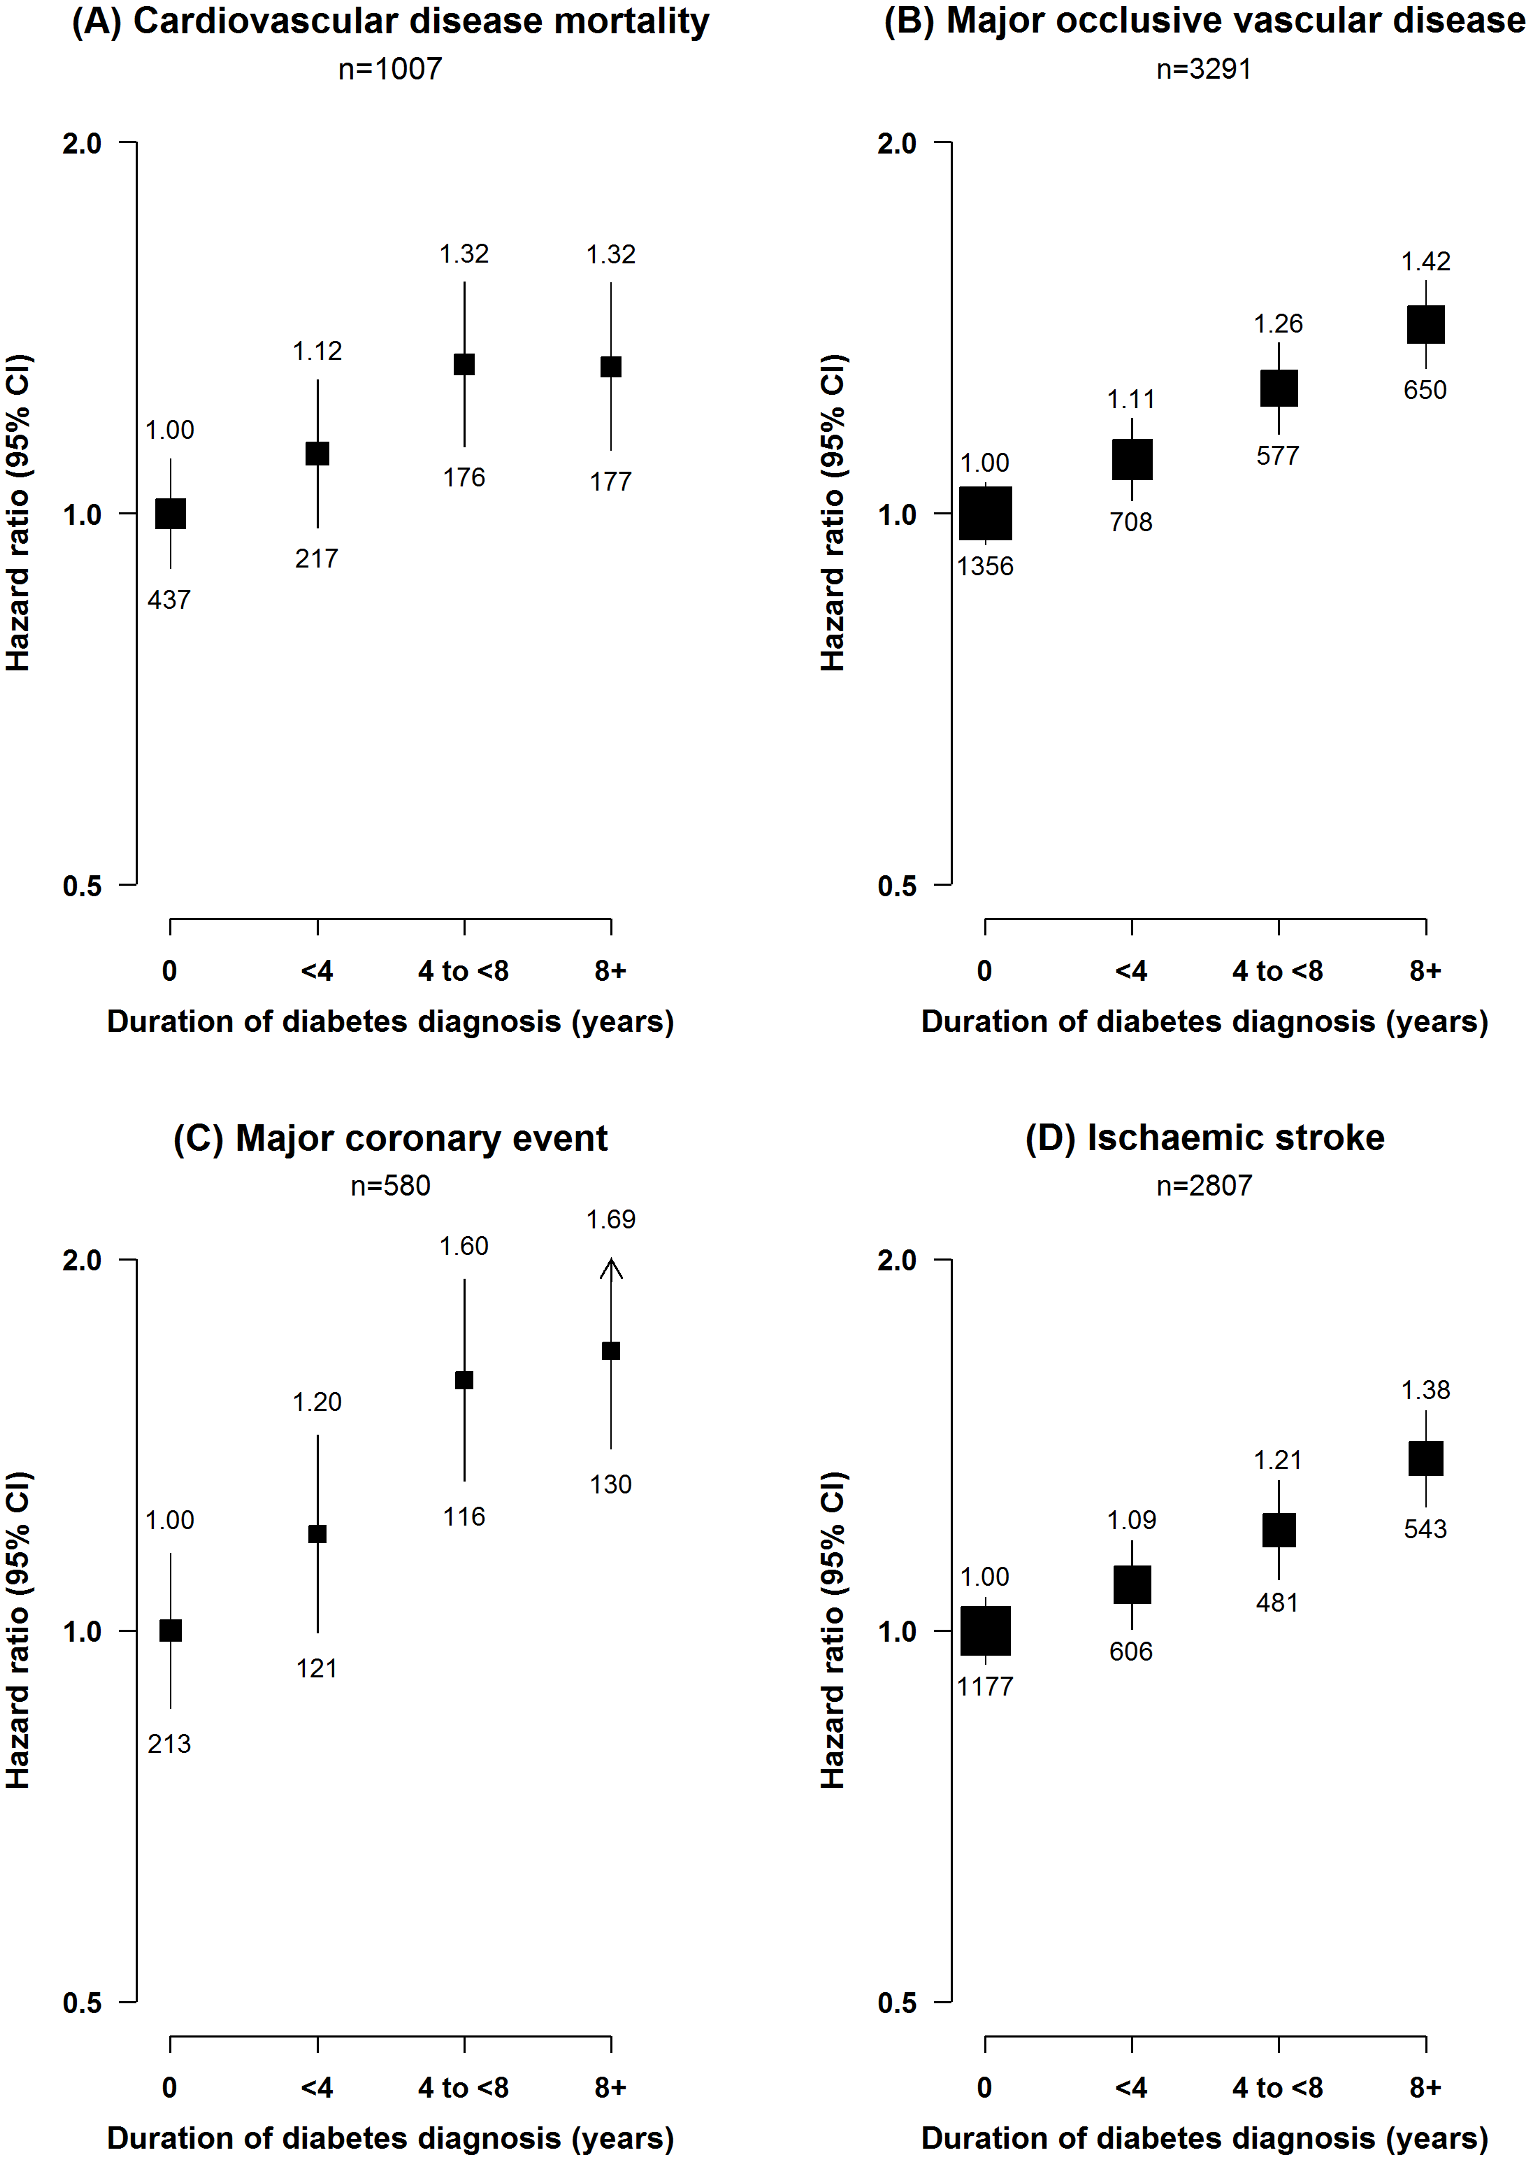 Adjusted hazard ratios for cardiovascular diseases by duration of diabetes diagnosis.